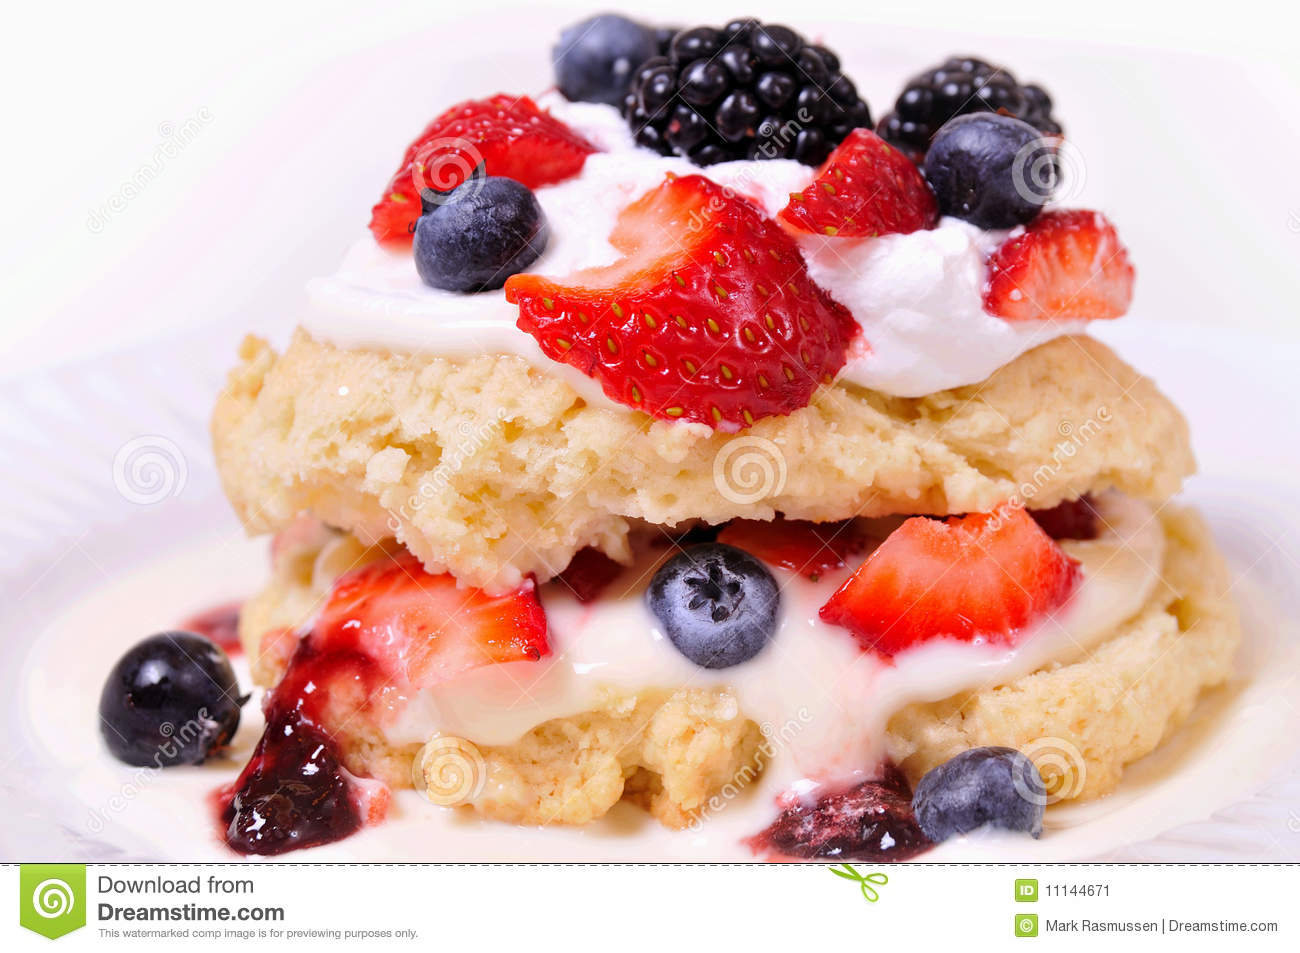 Mixed berry shortcake with whipped cream.